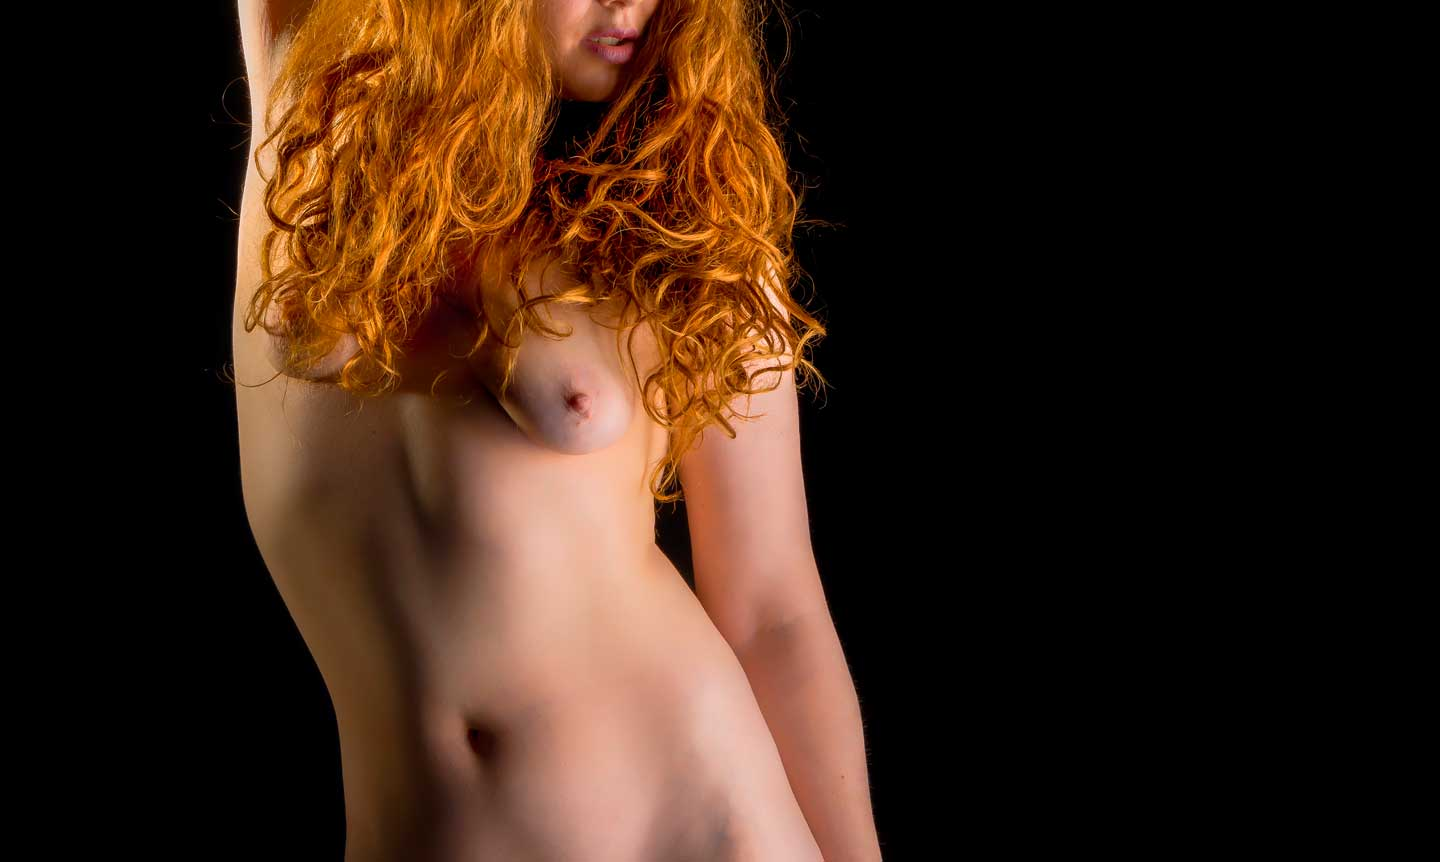 Yoni erotic massage in Madrid